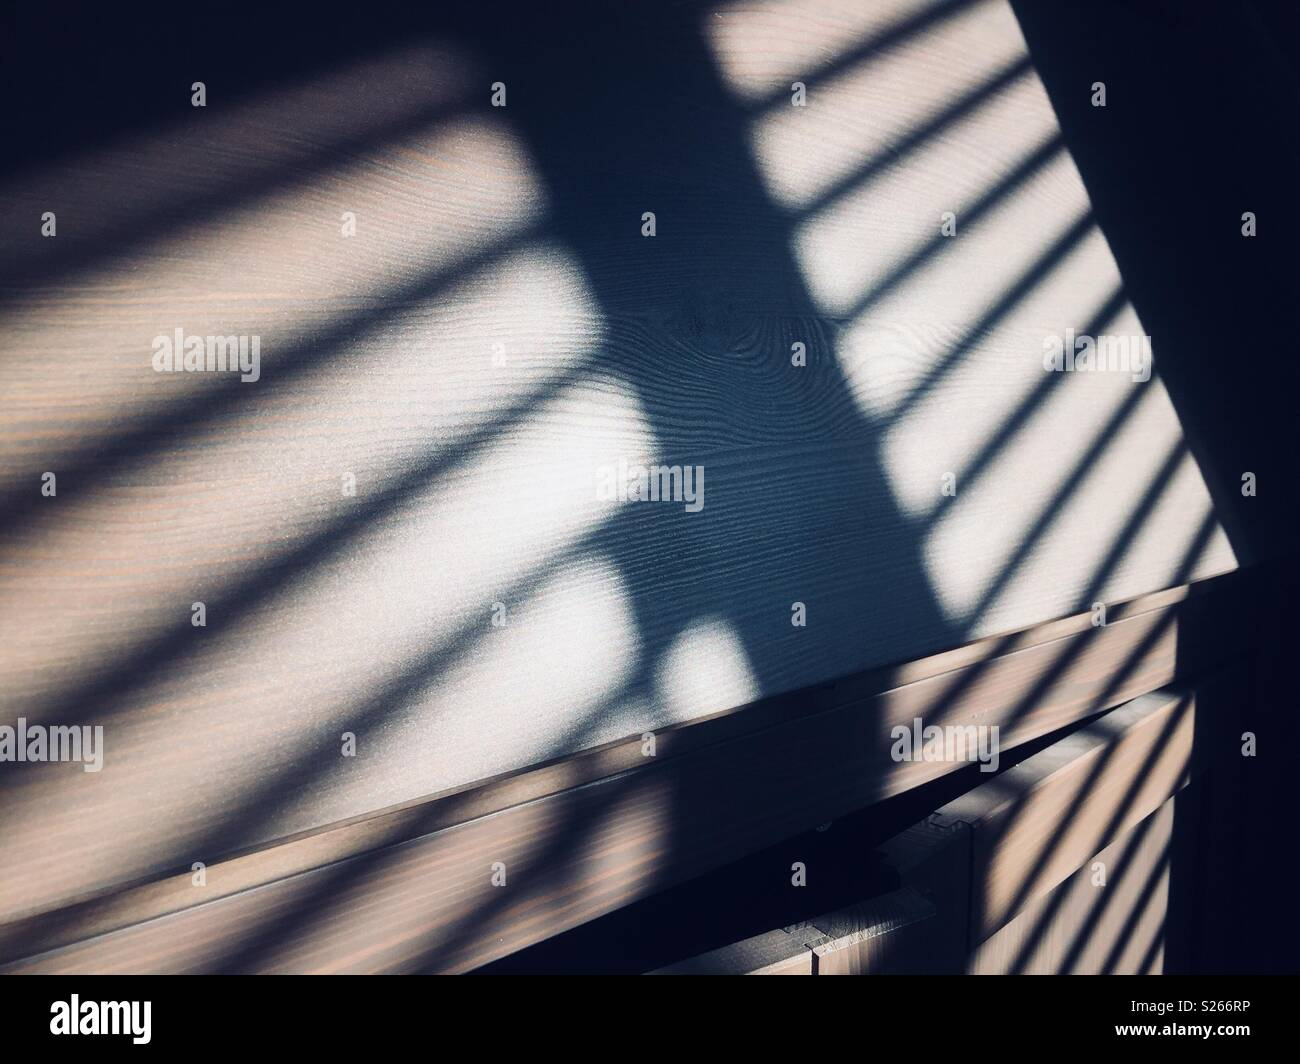 Shadows of a window blind cast on a cabinet by the evening sun - Stock Image